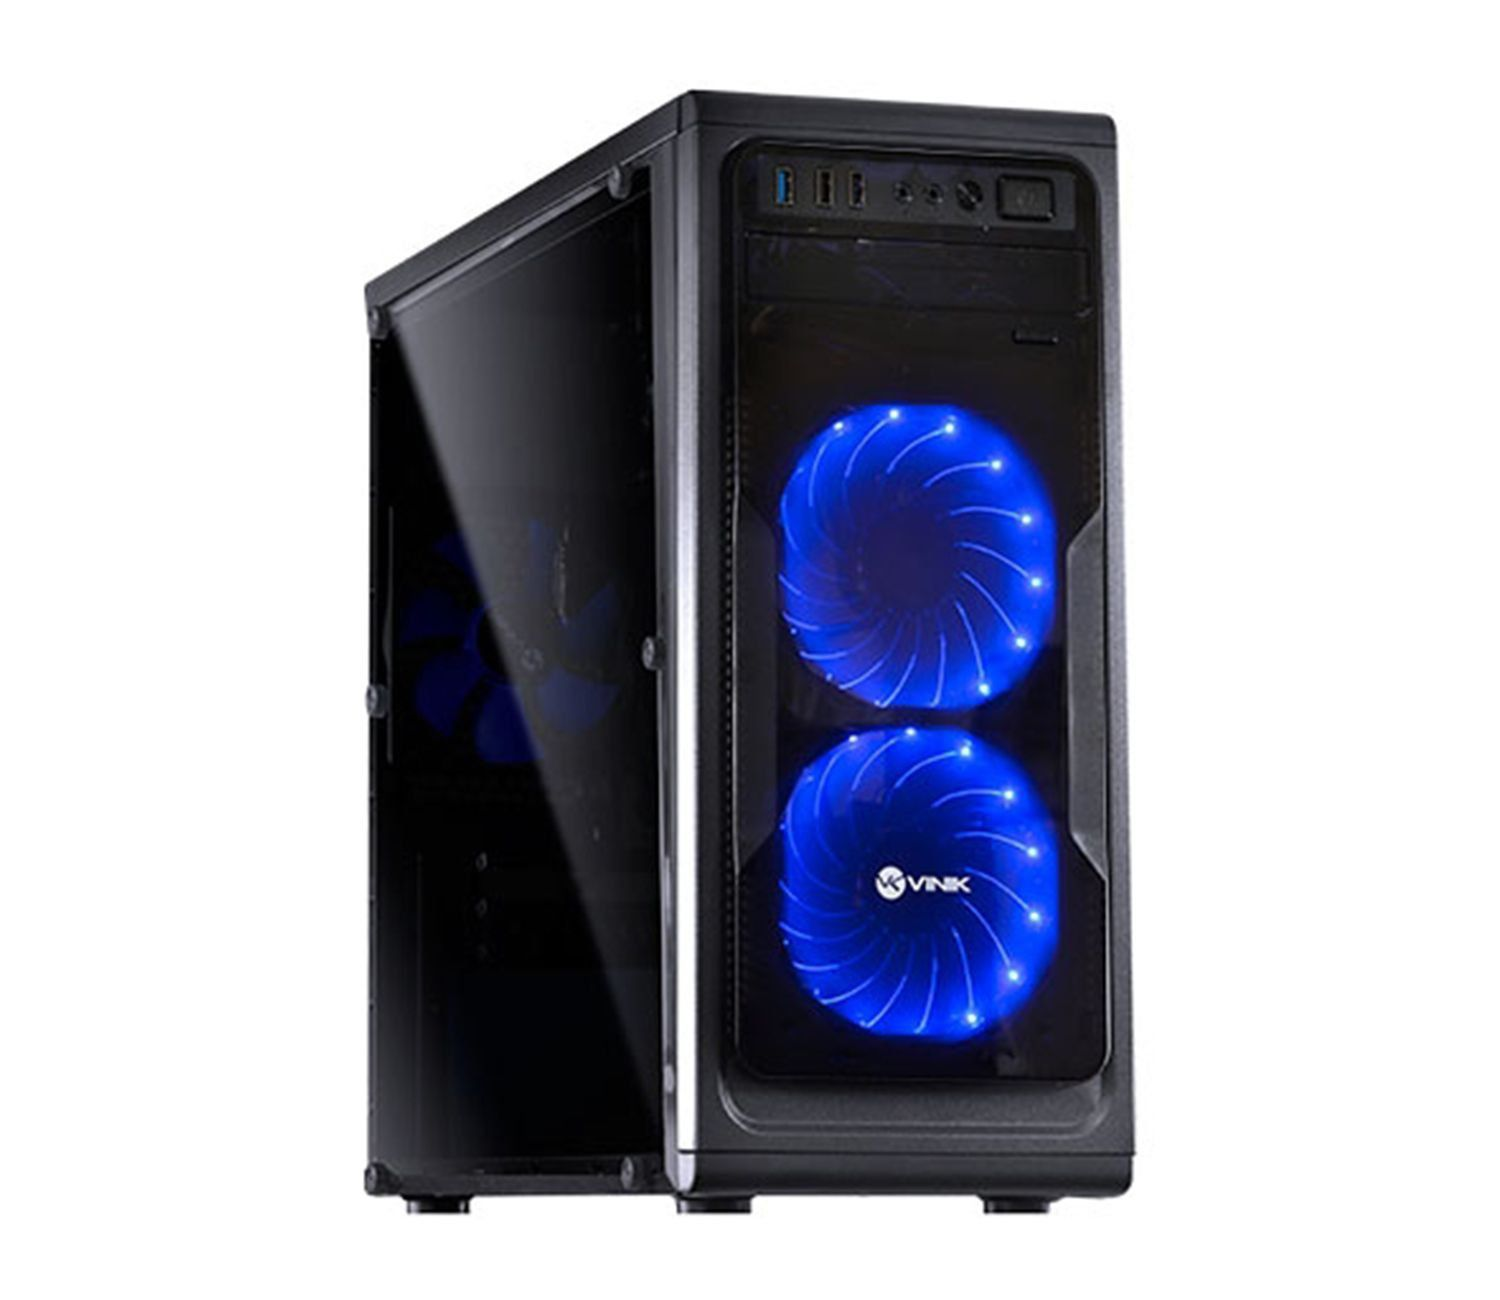 Computador CPU Top Gamer Amd Ryzen 7 1700 3.0Ghz 8GB DDR4 HD 1TB RX580 8GB Fonte 700W real